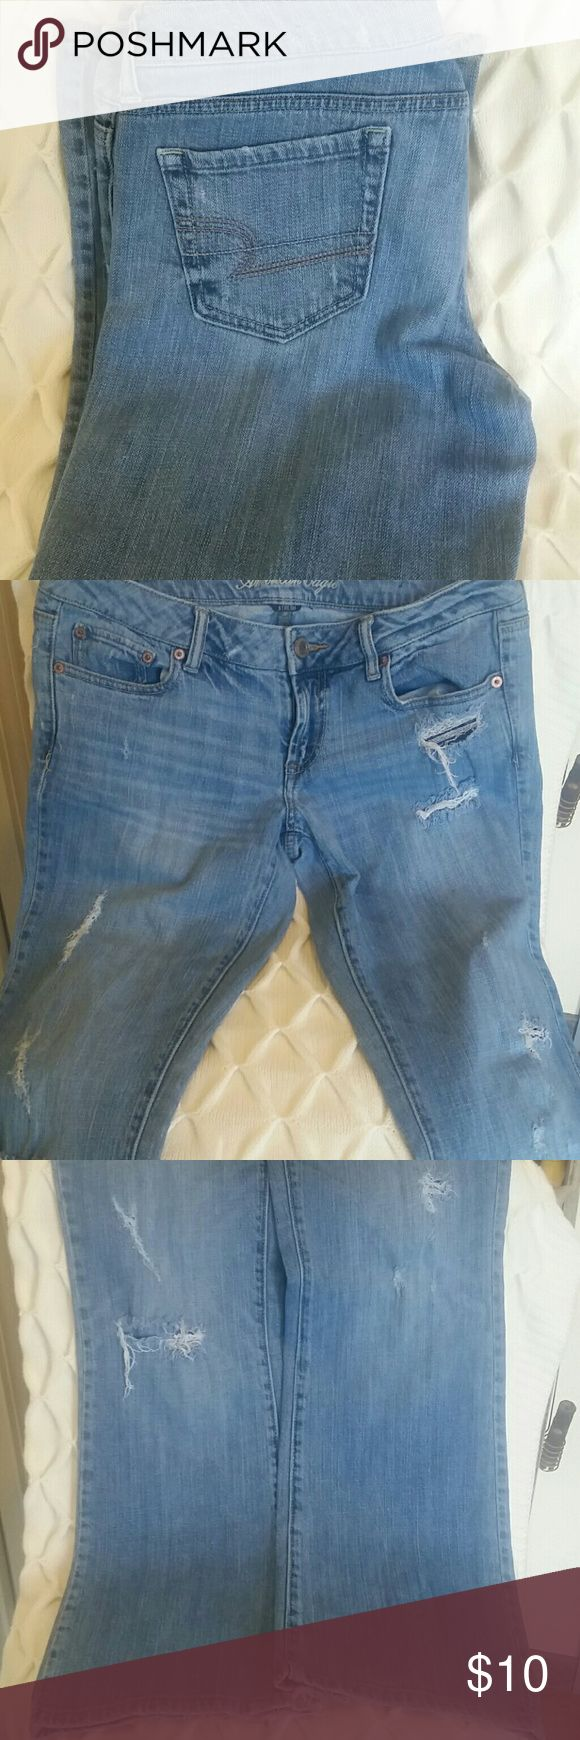 AMERICAN EAGLE JEANS! Nice American Eagle jeans with destroyed look American Eagle Outfitters Jeans